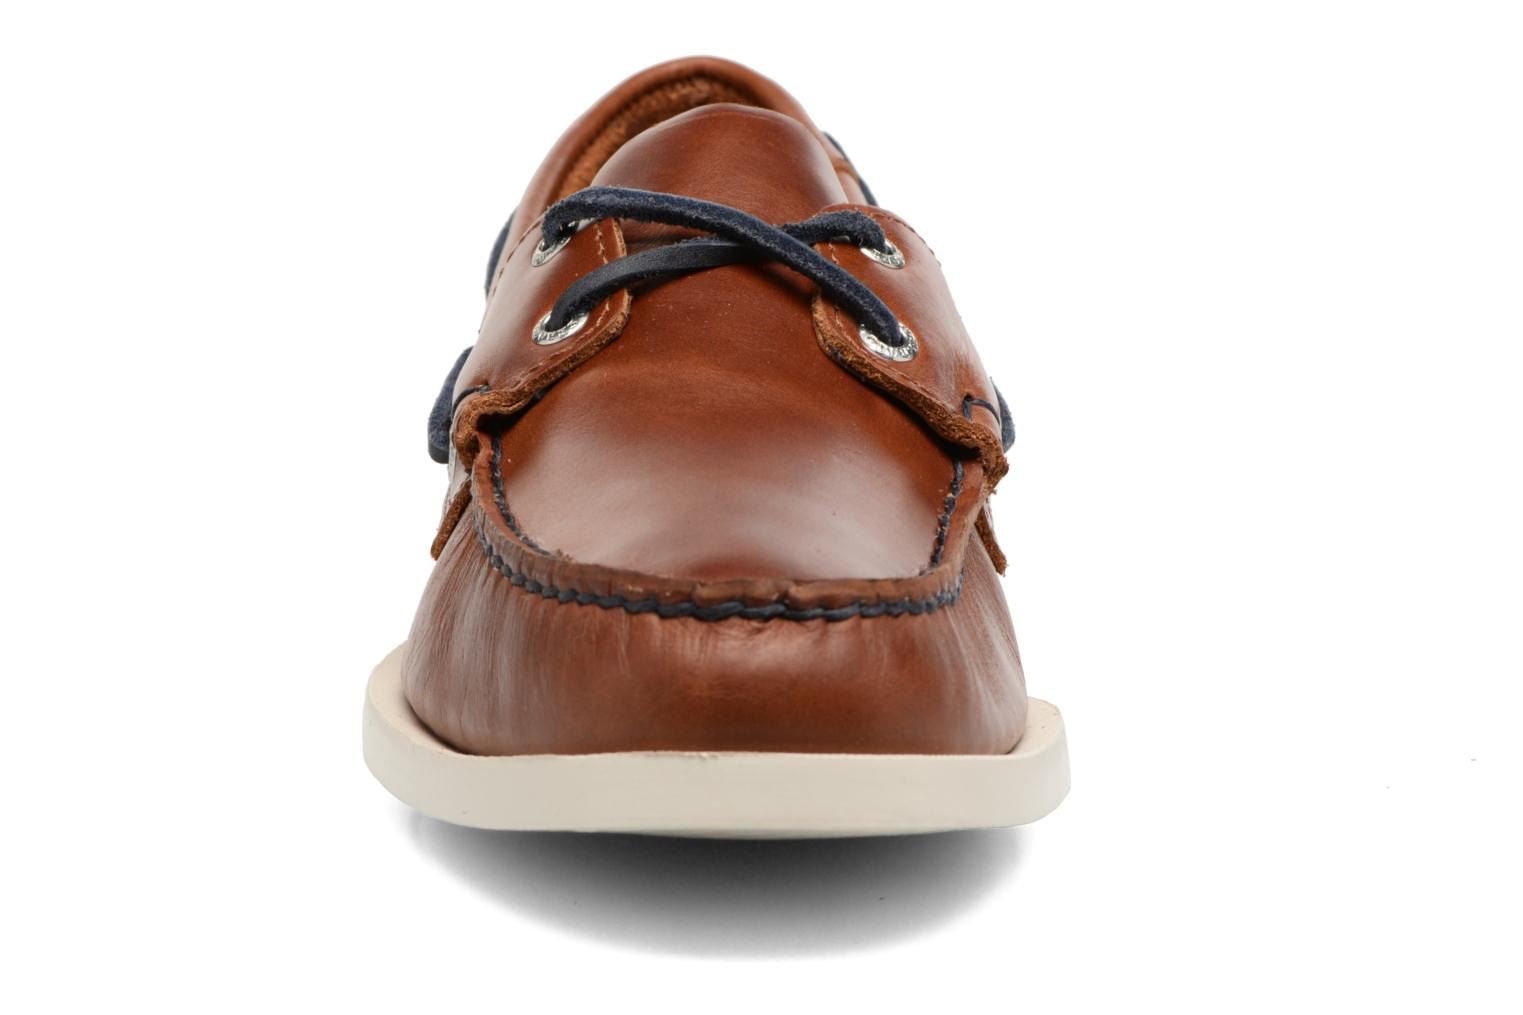 Spinnaker Cognac Leather/Navy Nubuck